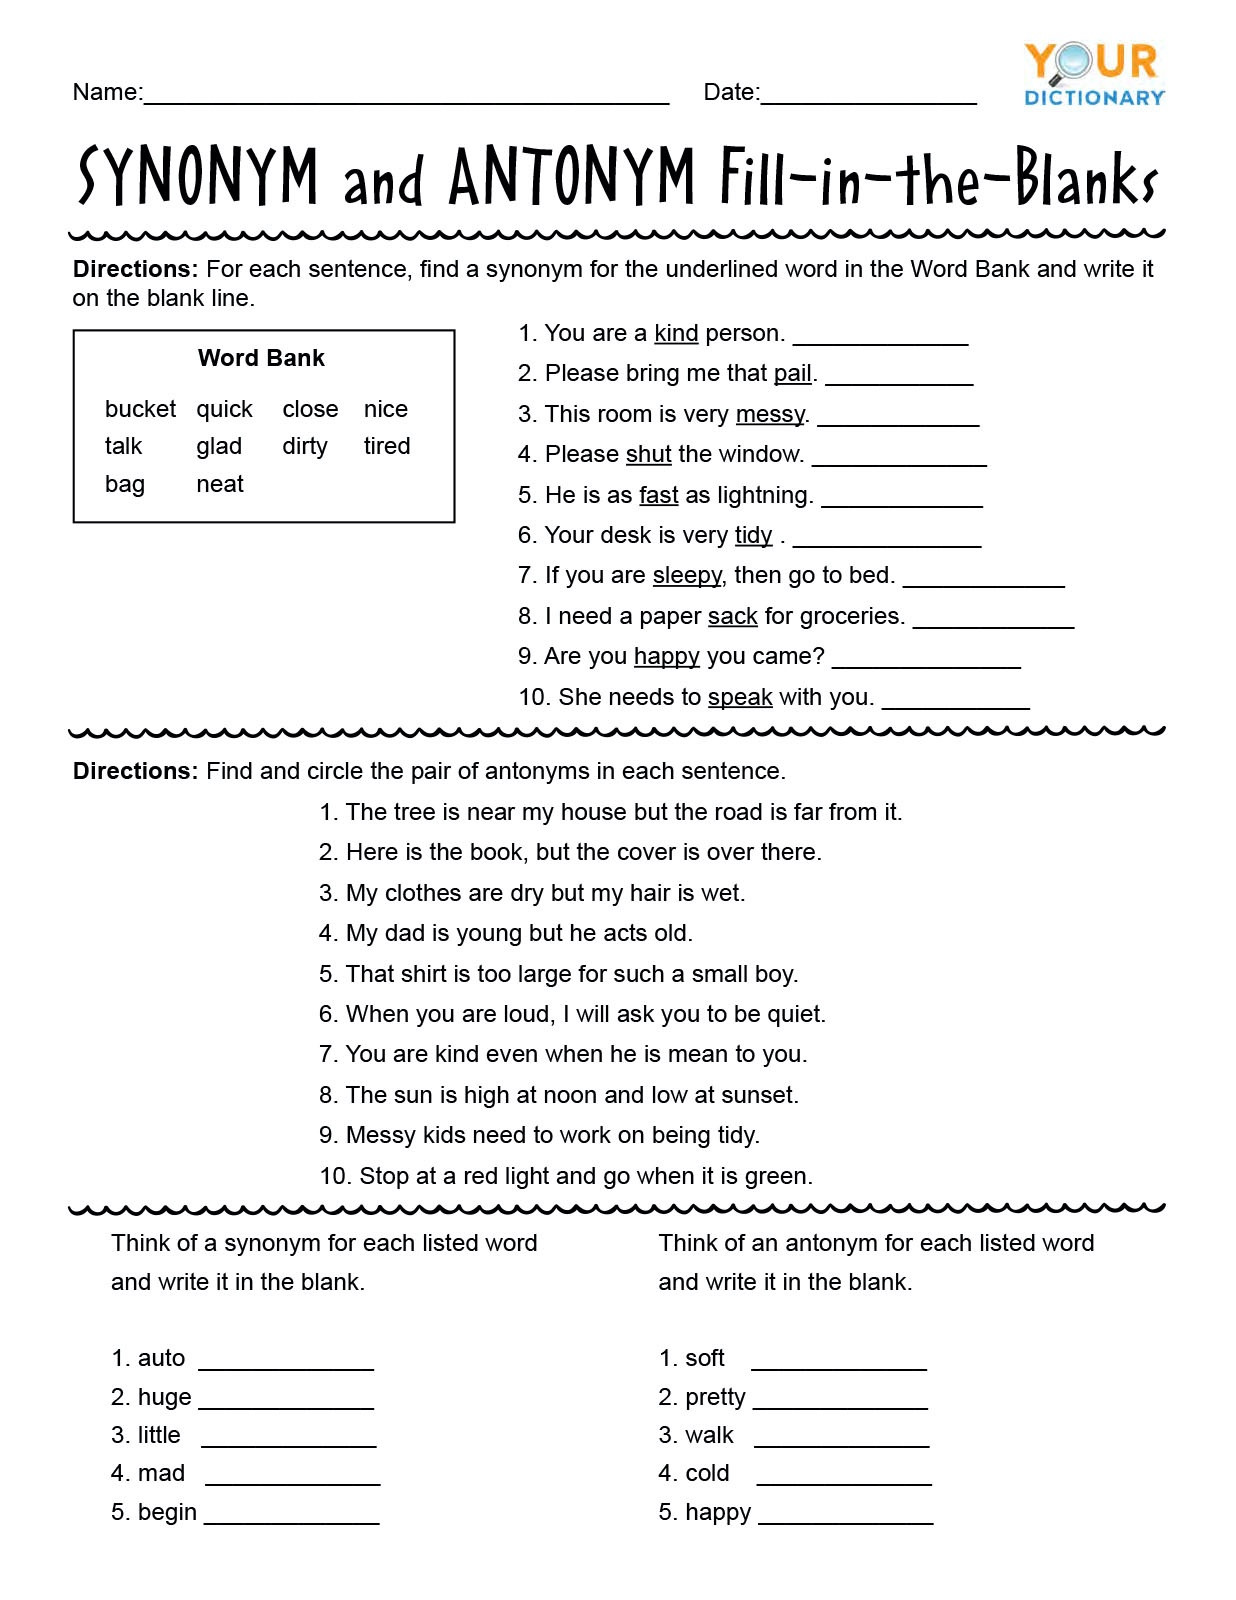 Transition Words Worksheets 4th Grade First Grade Synonyms and Antonyms Worksheets